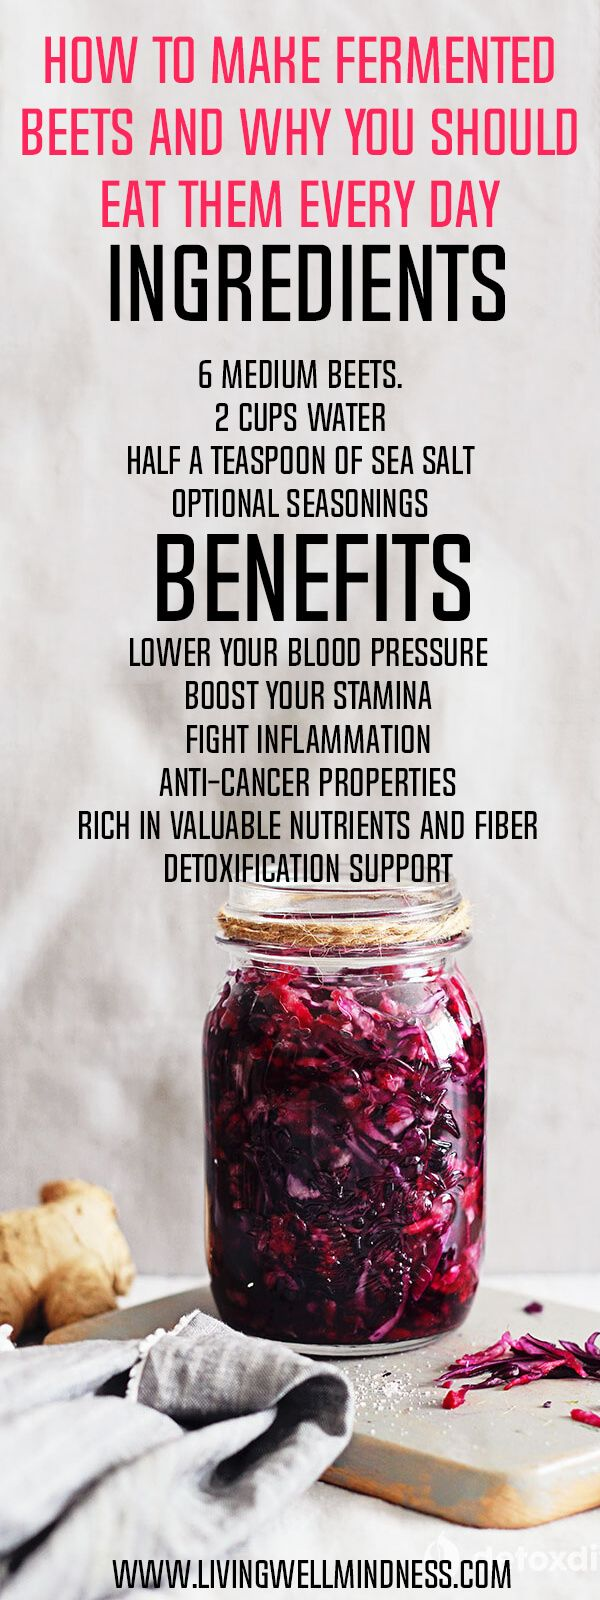 How to Make Fermented Beets and Why You Should Eat Them Every Day - Living Wellmindness